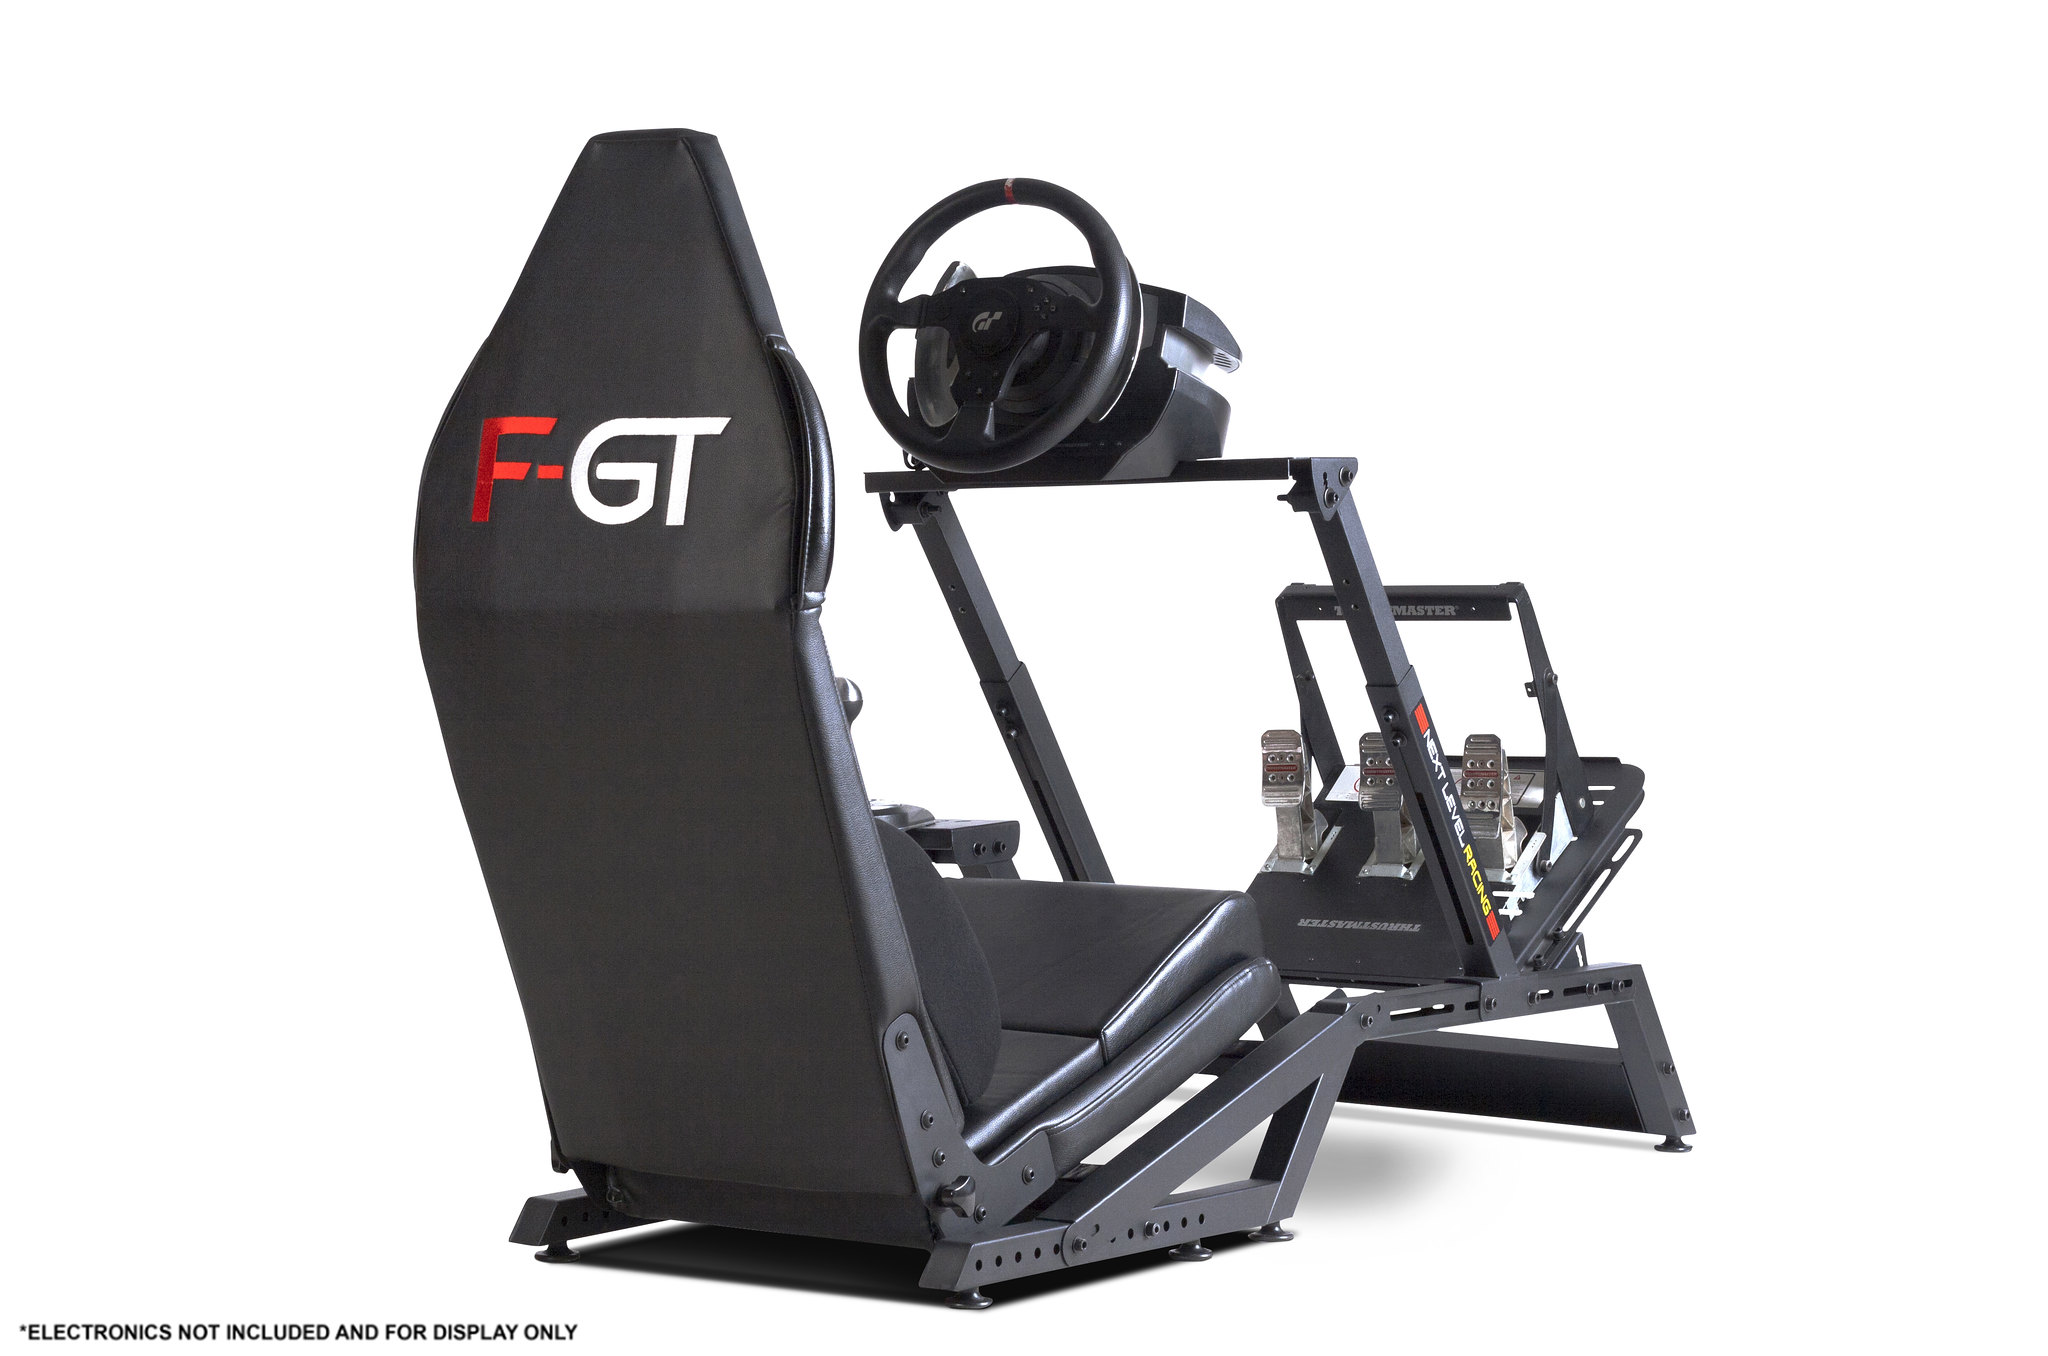 Next Level Racing F-GT Matte Black Simulator Cockpit 11